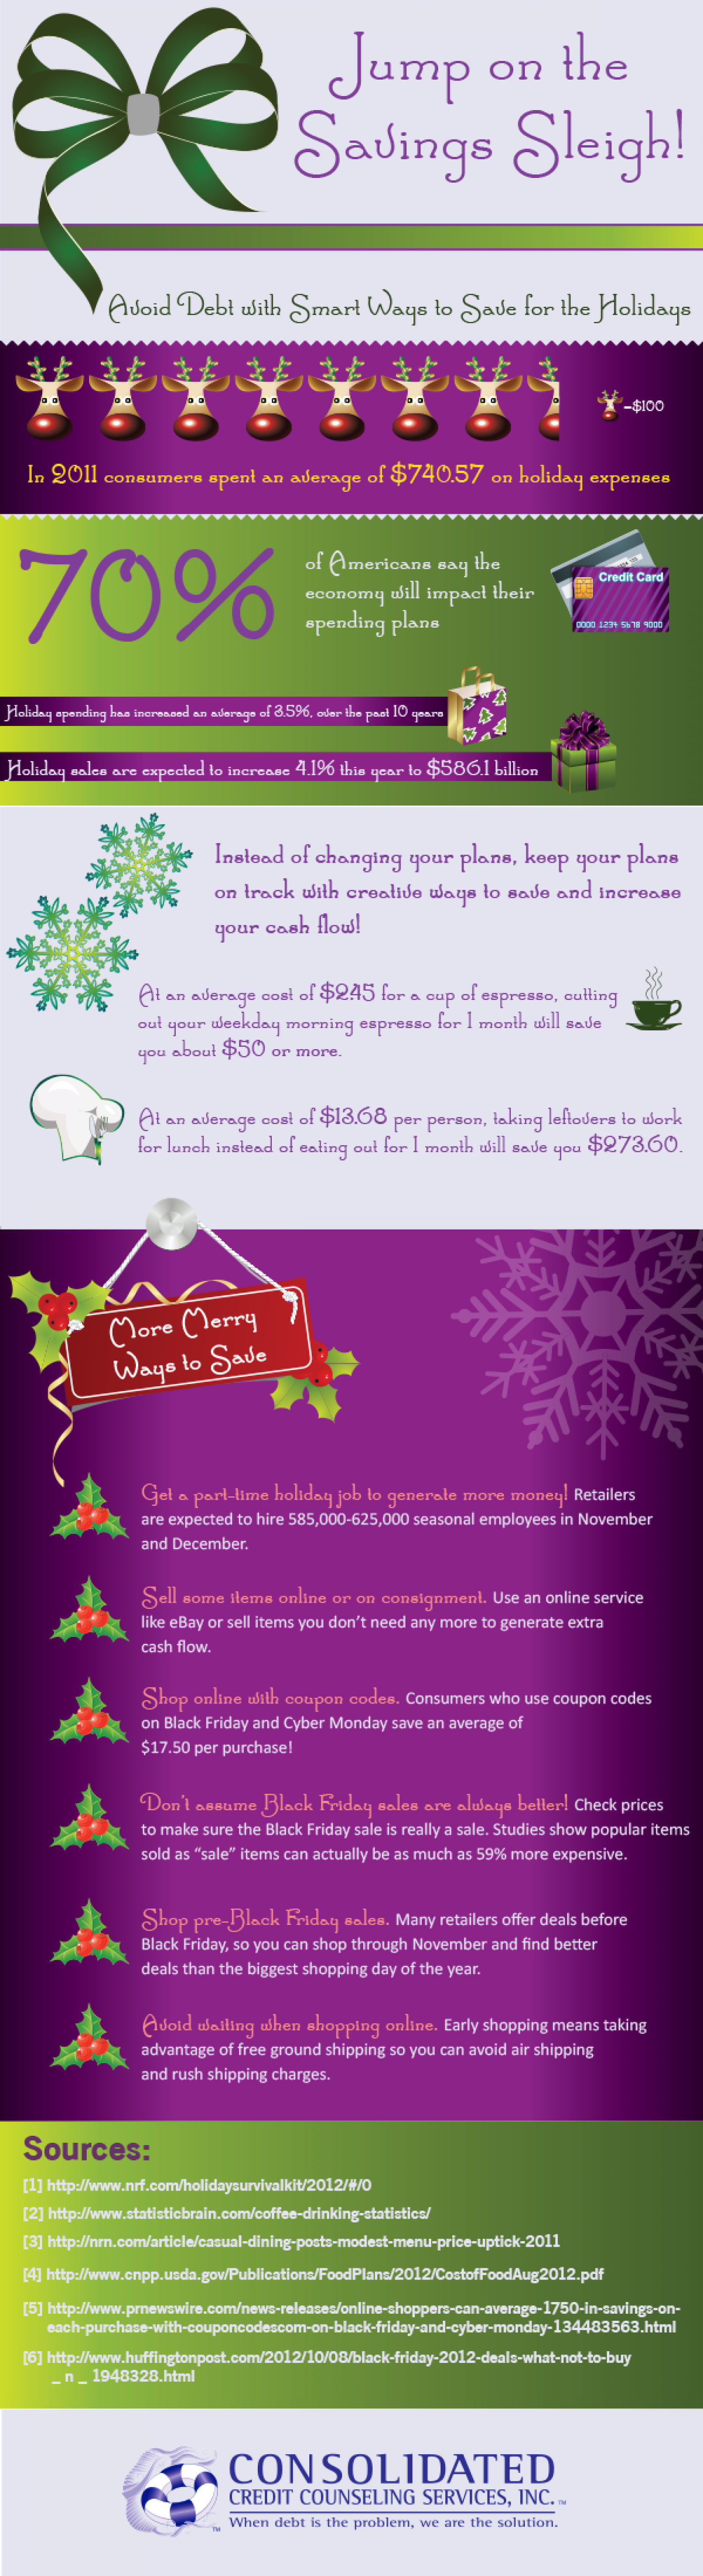 2012 Holiday Infographic: Jump on the Savings Sleigh! Infographic